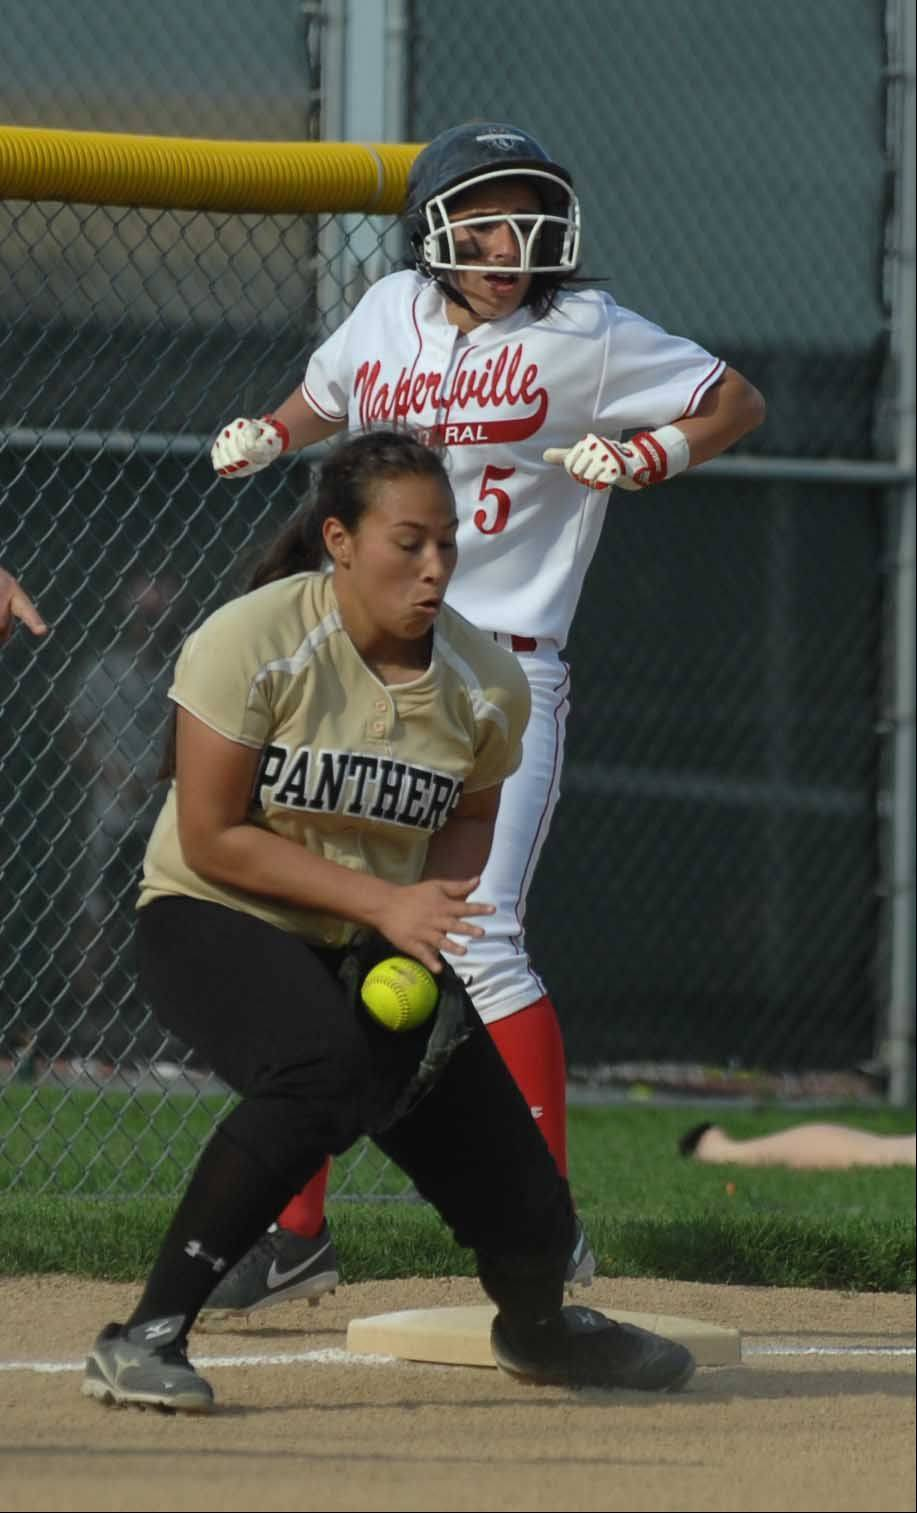 Lindsey Gonzalez, of Naperville Central, makes it to third while Stephanie Campos of Glenbard North North just misses the tag during the Glenbard North at Naperville Central softball game Wednesday.